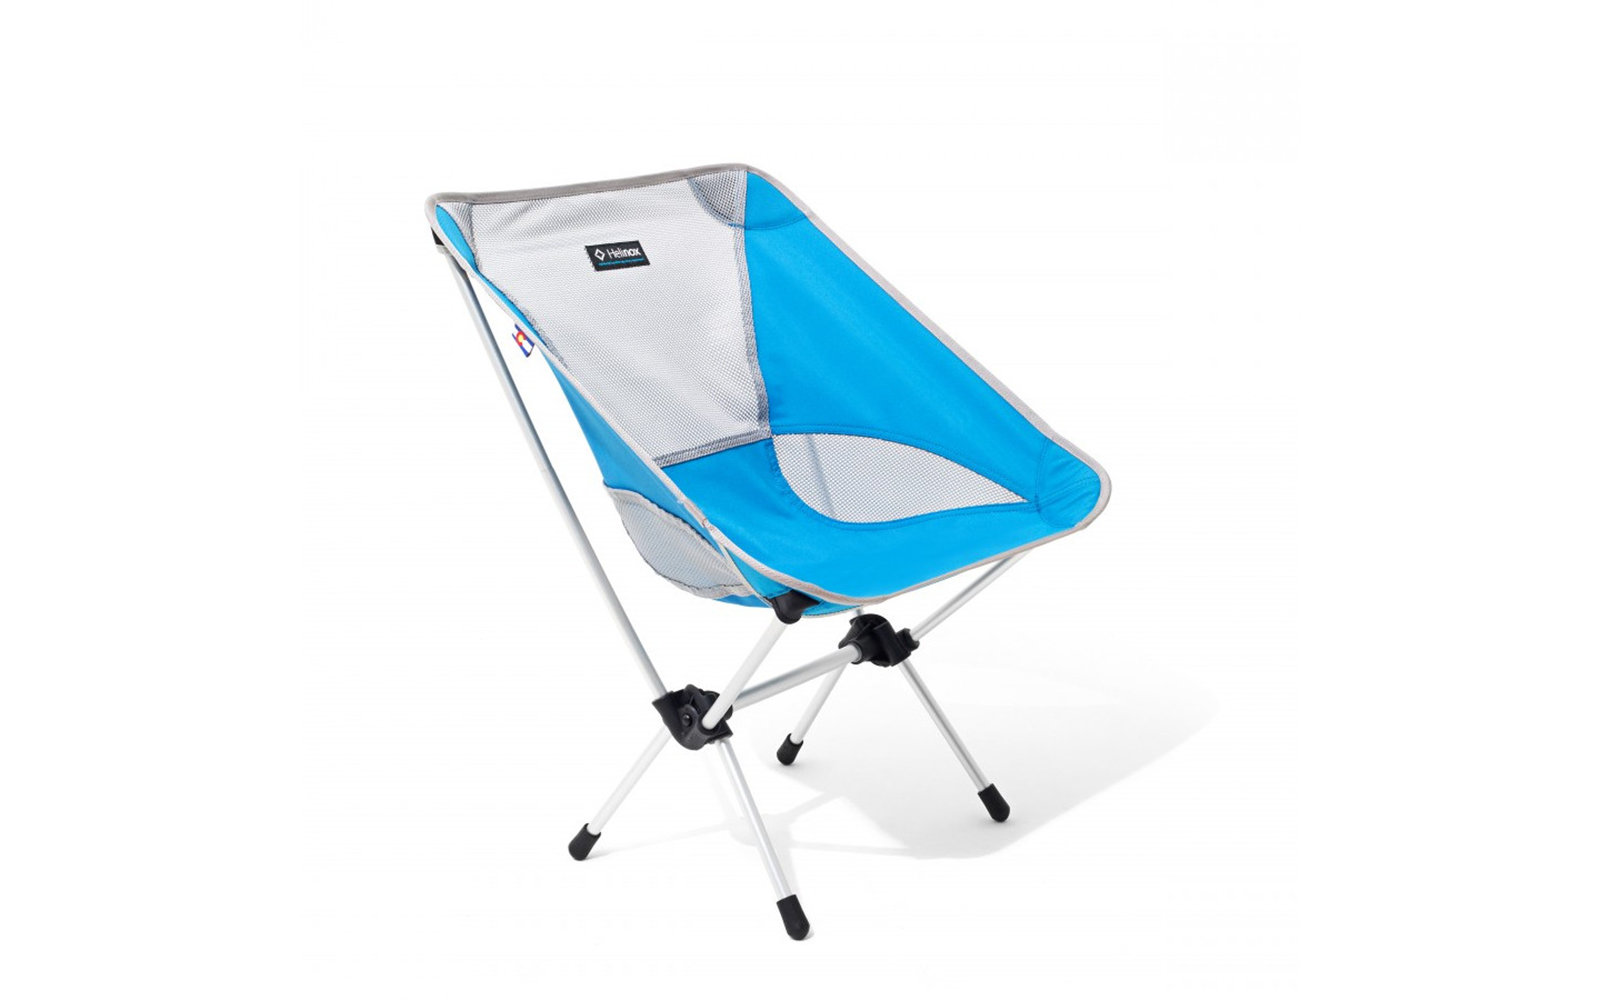 portable folding chairs ergonomic arm chair the best camping travel leisure helinox camp